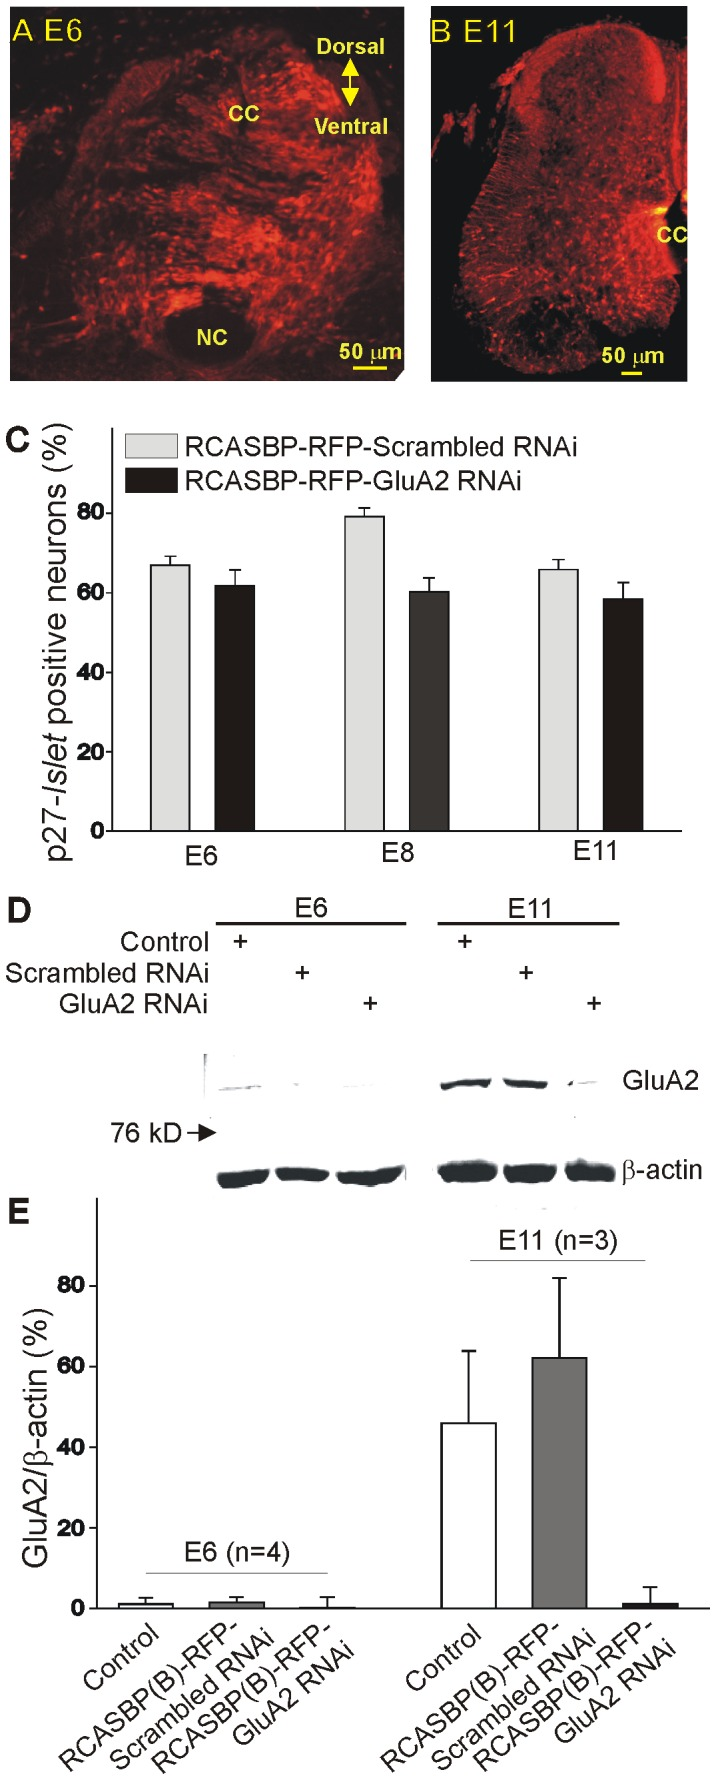 Effect of RCASBP(B)-RFP-GluA2 RNAi infection on chicken embryos. A–B ) Expression of red fluorescence protein (RFP) transgene in the lumbar spinal cord of E6 ( A ) and E11 ( B ) chicken embryos following retroviral infection with an RCASBP(B)-RFP-GluA2 RNAi construct. Embryos infected with the RCASBP(B)-RFP-GluA2 RNAi construct show strong fluorescent labeling throughout the whole spinal cord cross section. cc = central canal, nc = notochord. C ) Averaged number of labeled neurons for the RCASBP(B) viral protein p27 gag as a percent of the total number of neuron labeled with the motoneuron marker <t>Islet1/2</t> in chicken embryos infected with an RCASBP(B)-RFP-scrambled RNAi or RCASBP(B)-RFP- GluA2 RNAi construct. Lumbar ventral neurons were isolated from E6, E8 or E11 chicken embryos and immunolabeled with p27 gag and Islet1/2 in order to assess the extent of viral infection of spinal motoneurons. Notice that ≥60% of infected cells also tested positive for the motoneuron marker Islet1/2 at all ages tested. D ) Representative example of Western Blot data collected from the E6 and E11 ventral spinal cords from control chicken embryos (non-infected) or embryos infected with an RCASBP(B)-RFP-scrambled RNAi or RCASBP(B)-RFP-GluA2 RNAi constructs. The anti-GluA2 antibody detected a band with a relative molecular weight of ∼102 kD. To normalize for changes in protein loading in each well, membranes were reprobed for β-actin (∼42 kD). Infection of chicken embryos with an RCASBP(B)-RFP- GluA2 RNAi construct causes a significant reduction in GluA2 expression at E11 as determined by immunoblot analysis. E ) Expression of GluA2 protein as a function of β-actin in chicken ventral spinal cords. The age-dependent increase in GluA2 protein expression between E6 and E11 chicken spinal cords was reversed by infection of chicken embryos with an RCASBP(B)-RFP- GluA2 RNAi construct. In these experiments, RCASBP(B)-RFP-scrambled RNAi or RCASBP(B)-RFP-GluA2 RNAi viral particles were inj